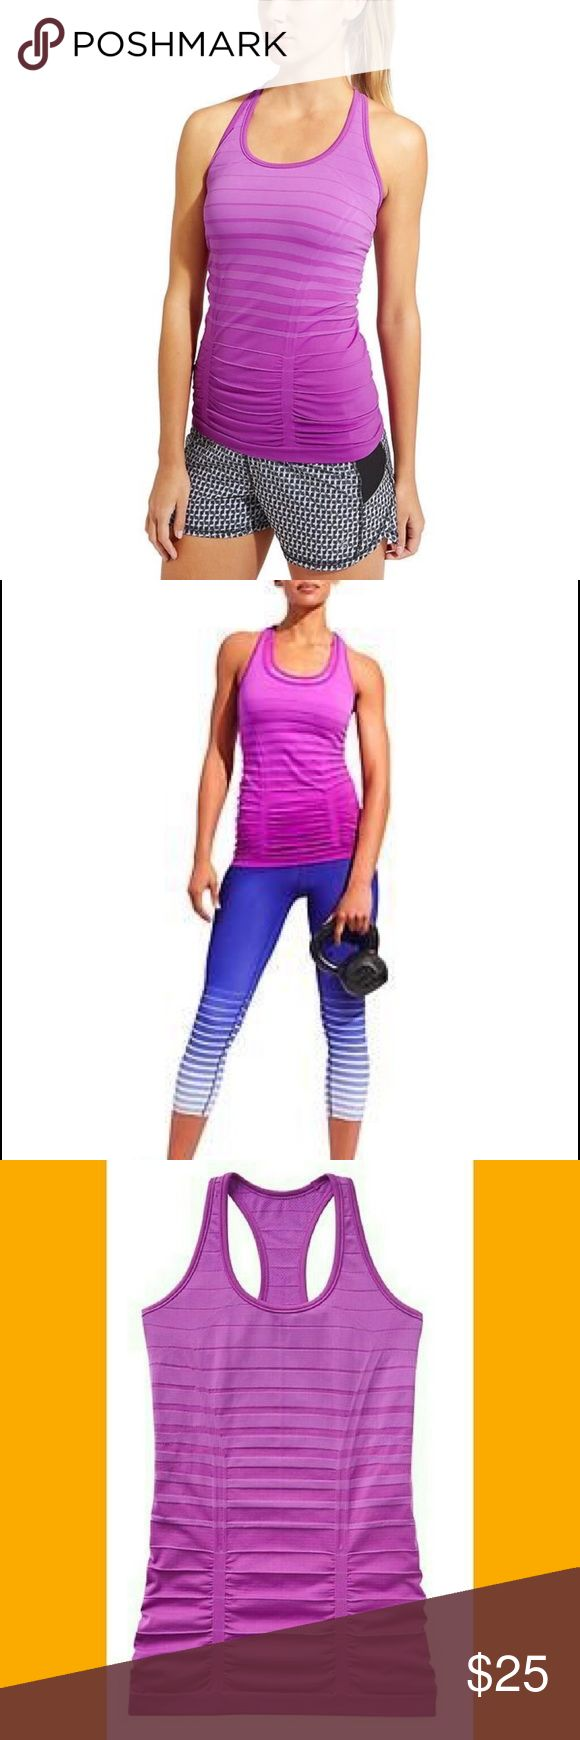 NWOT Athleta Purple Gradient Fastest Track Tank LG Your favorite, go-to training tank for high-intensity sweat sessions has our best technologies: Unstinkable, Regul8, and chafe-free seamless fabric. * Run, gym/training, studio workouts * Racerback gives you full range of arm motion * Shirring along the front and back is fit to flatter * Gripper dots along hem stop it from riding up Comes from a smoke and pet free home Item is new without tags and has never been worn My prices are firm. No…